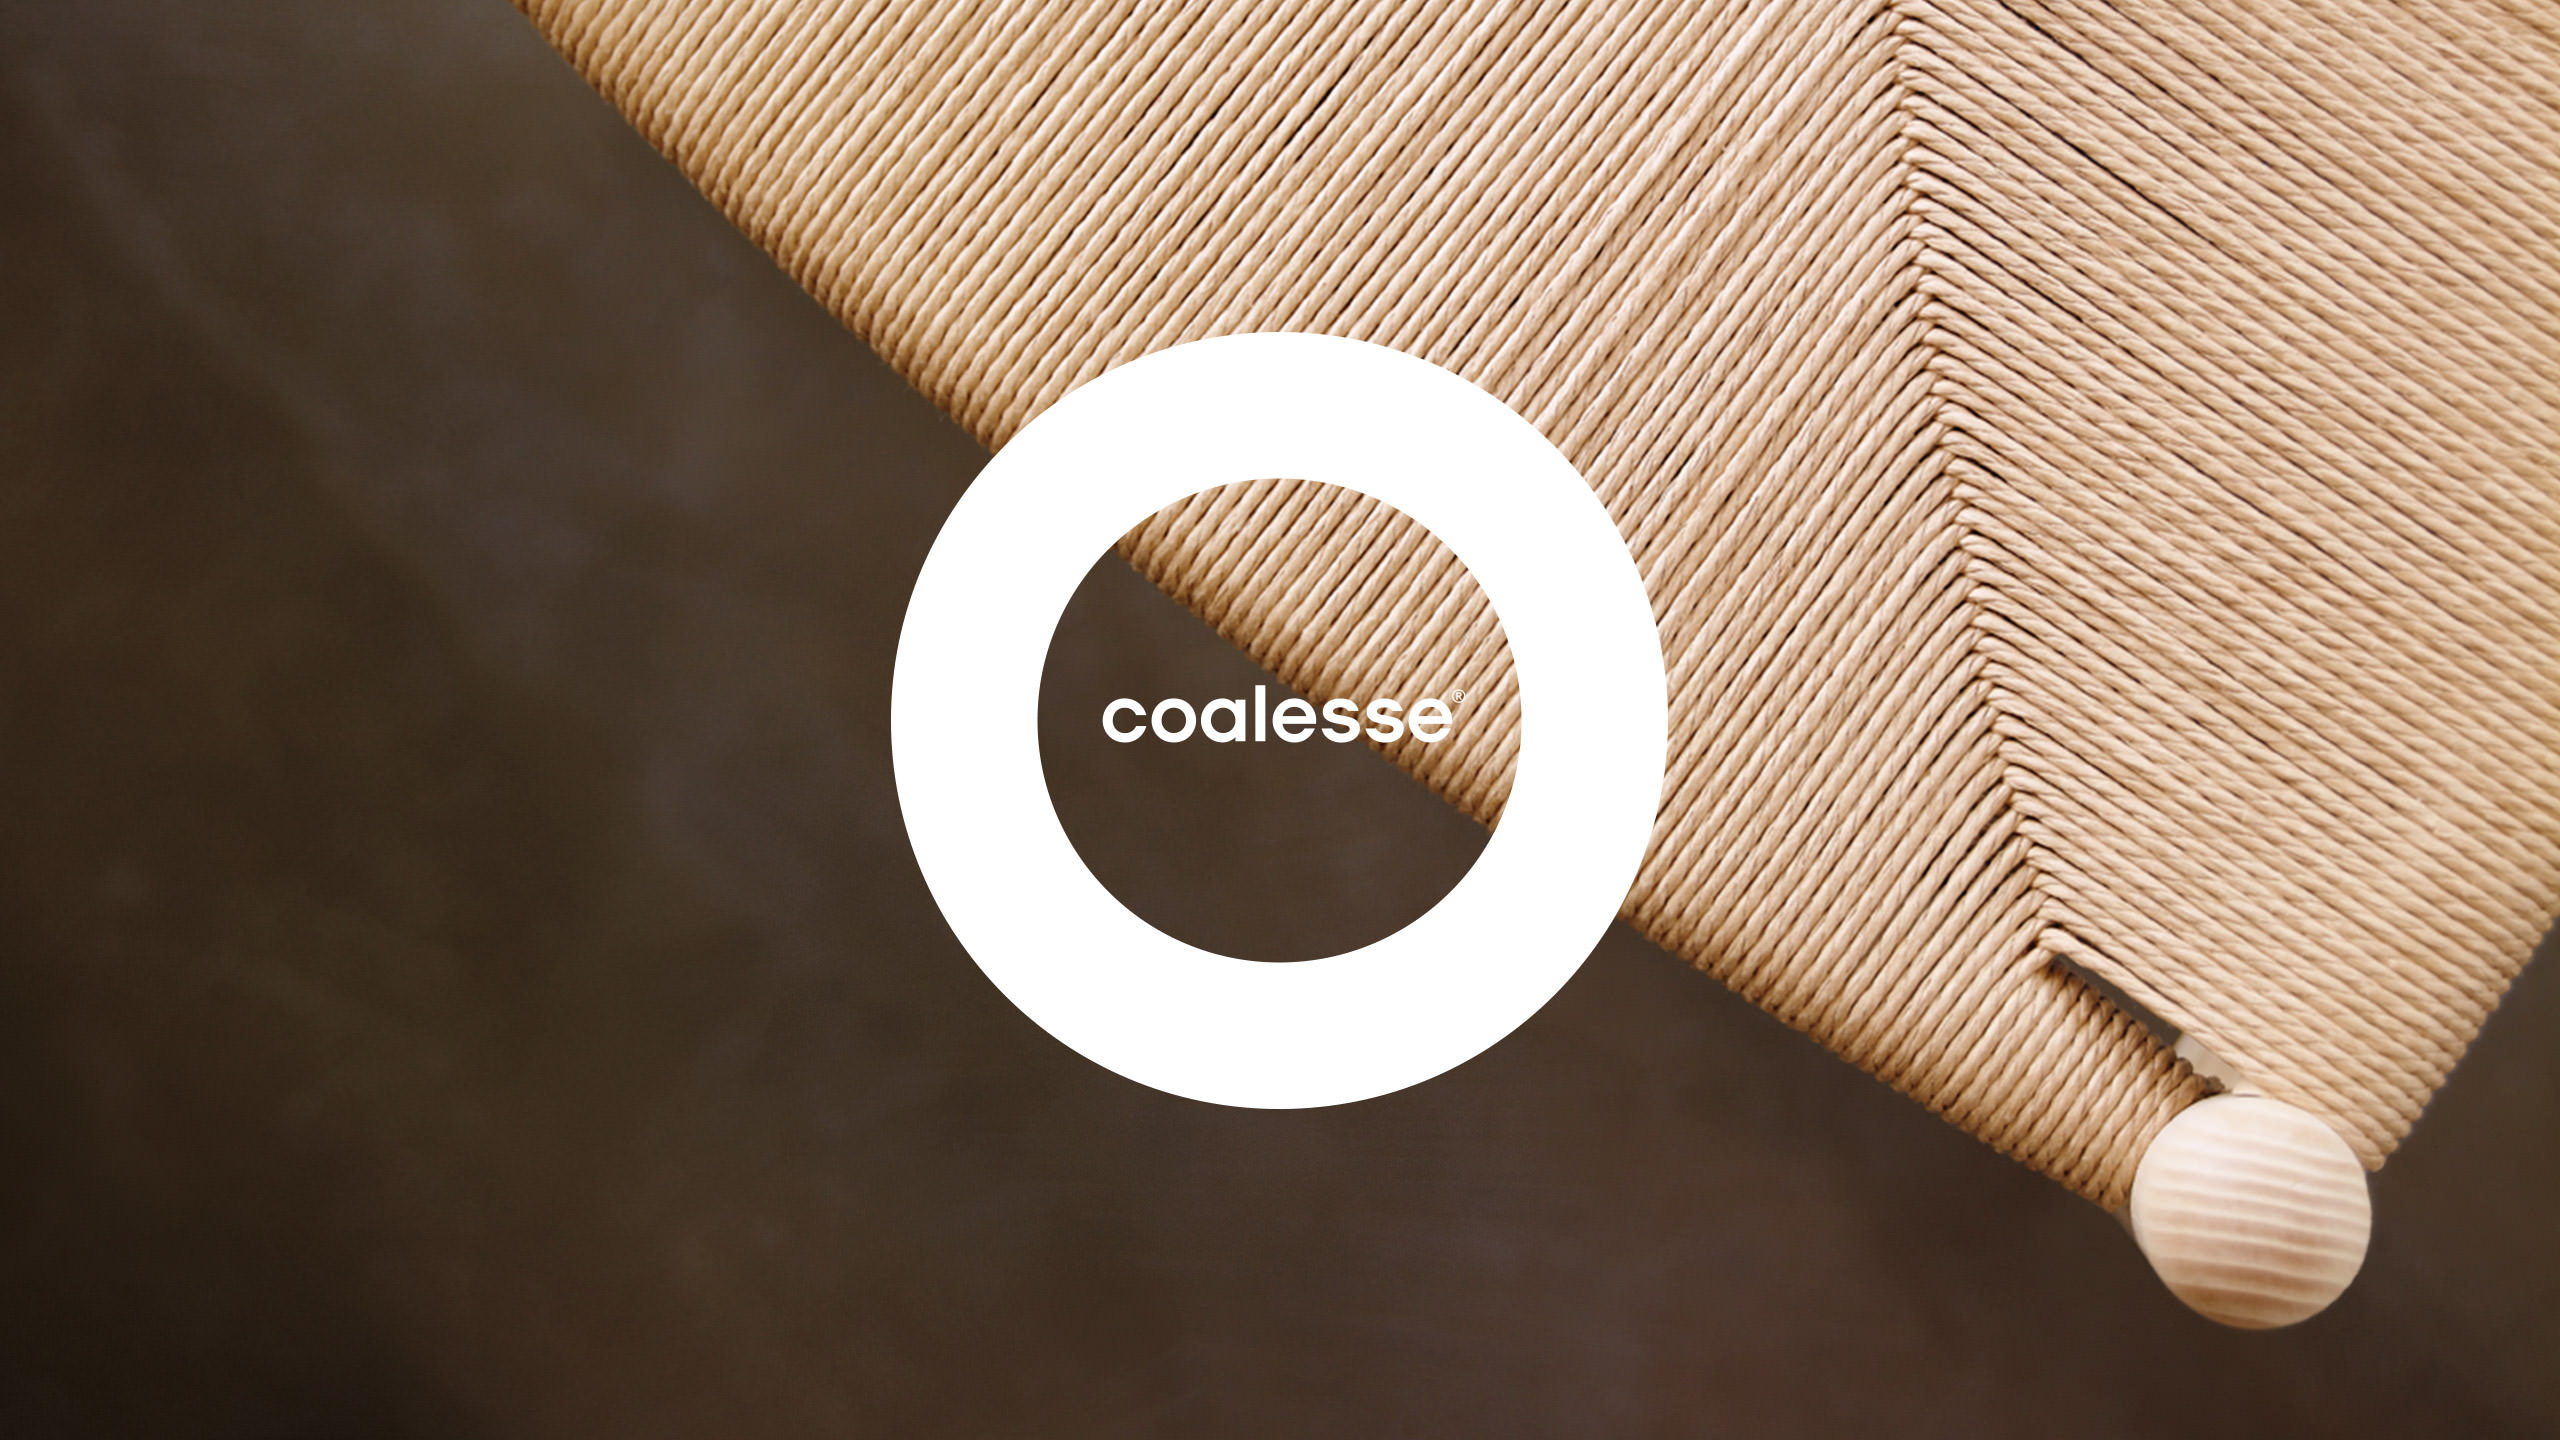 Coalesse Brand logo on chair background image